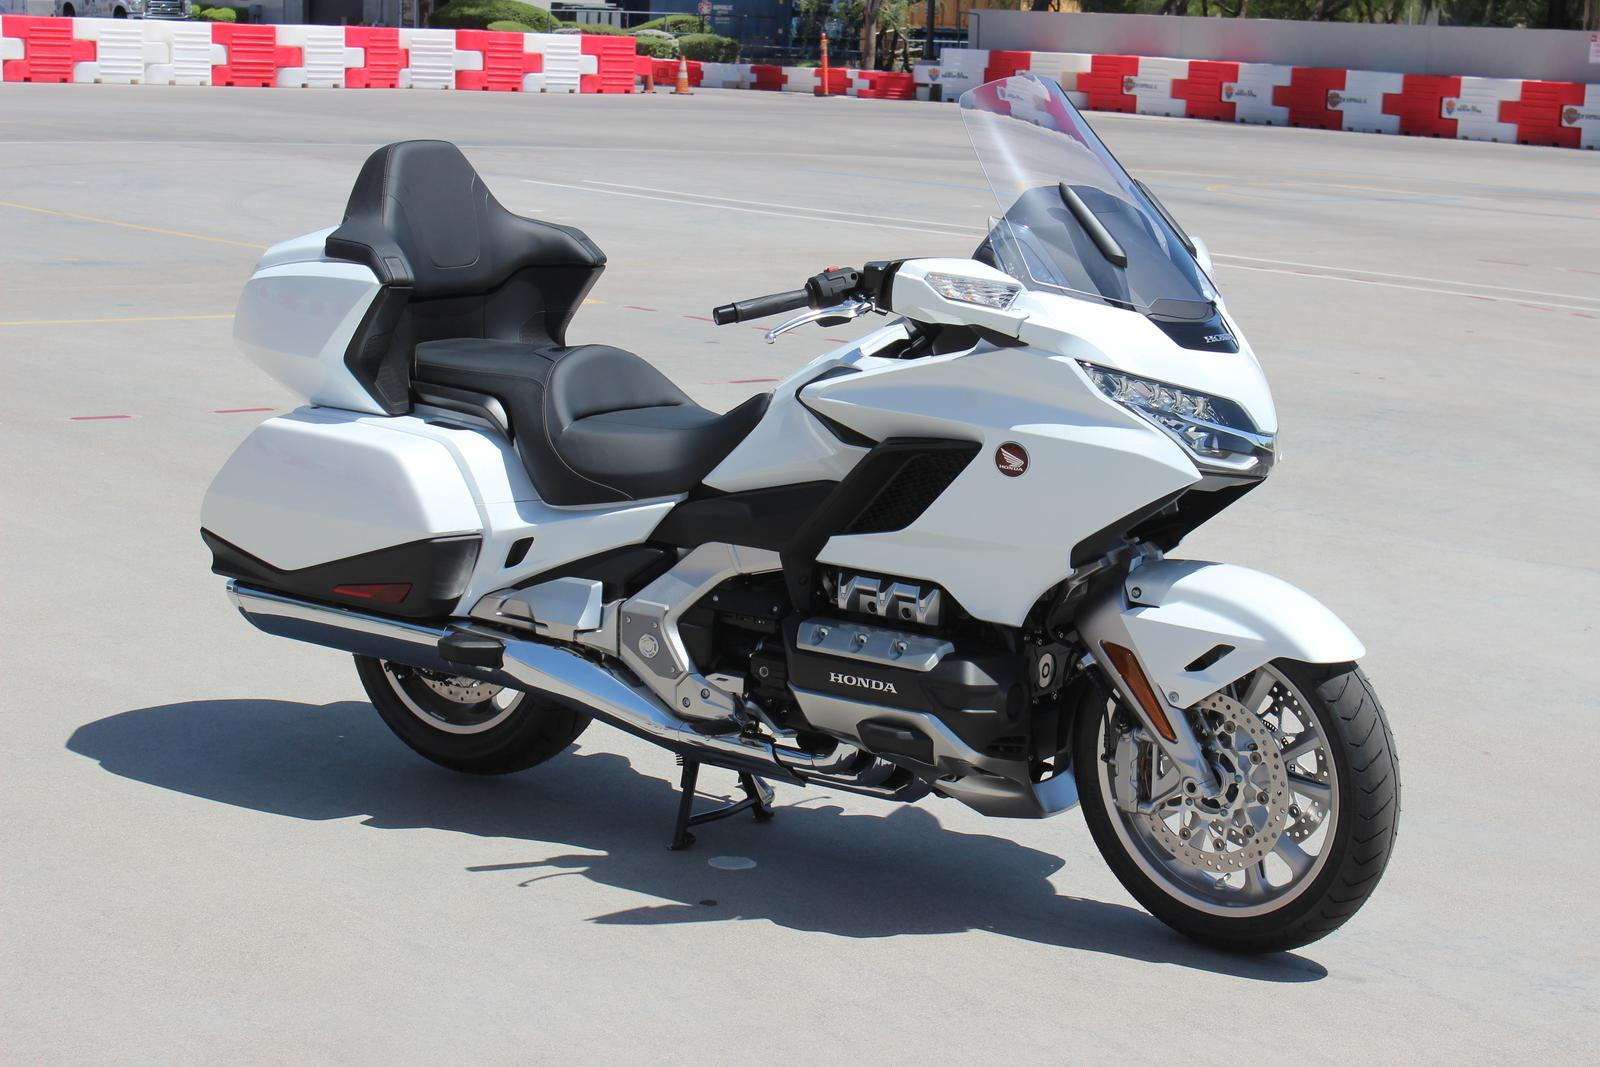 2018 Honda Gold Wing Tour Pearl White For Sale In Scottsdale Az